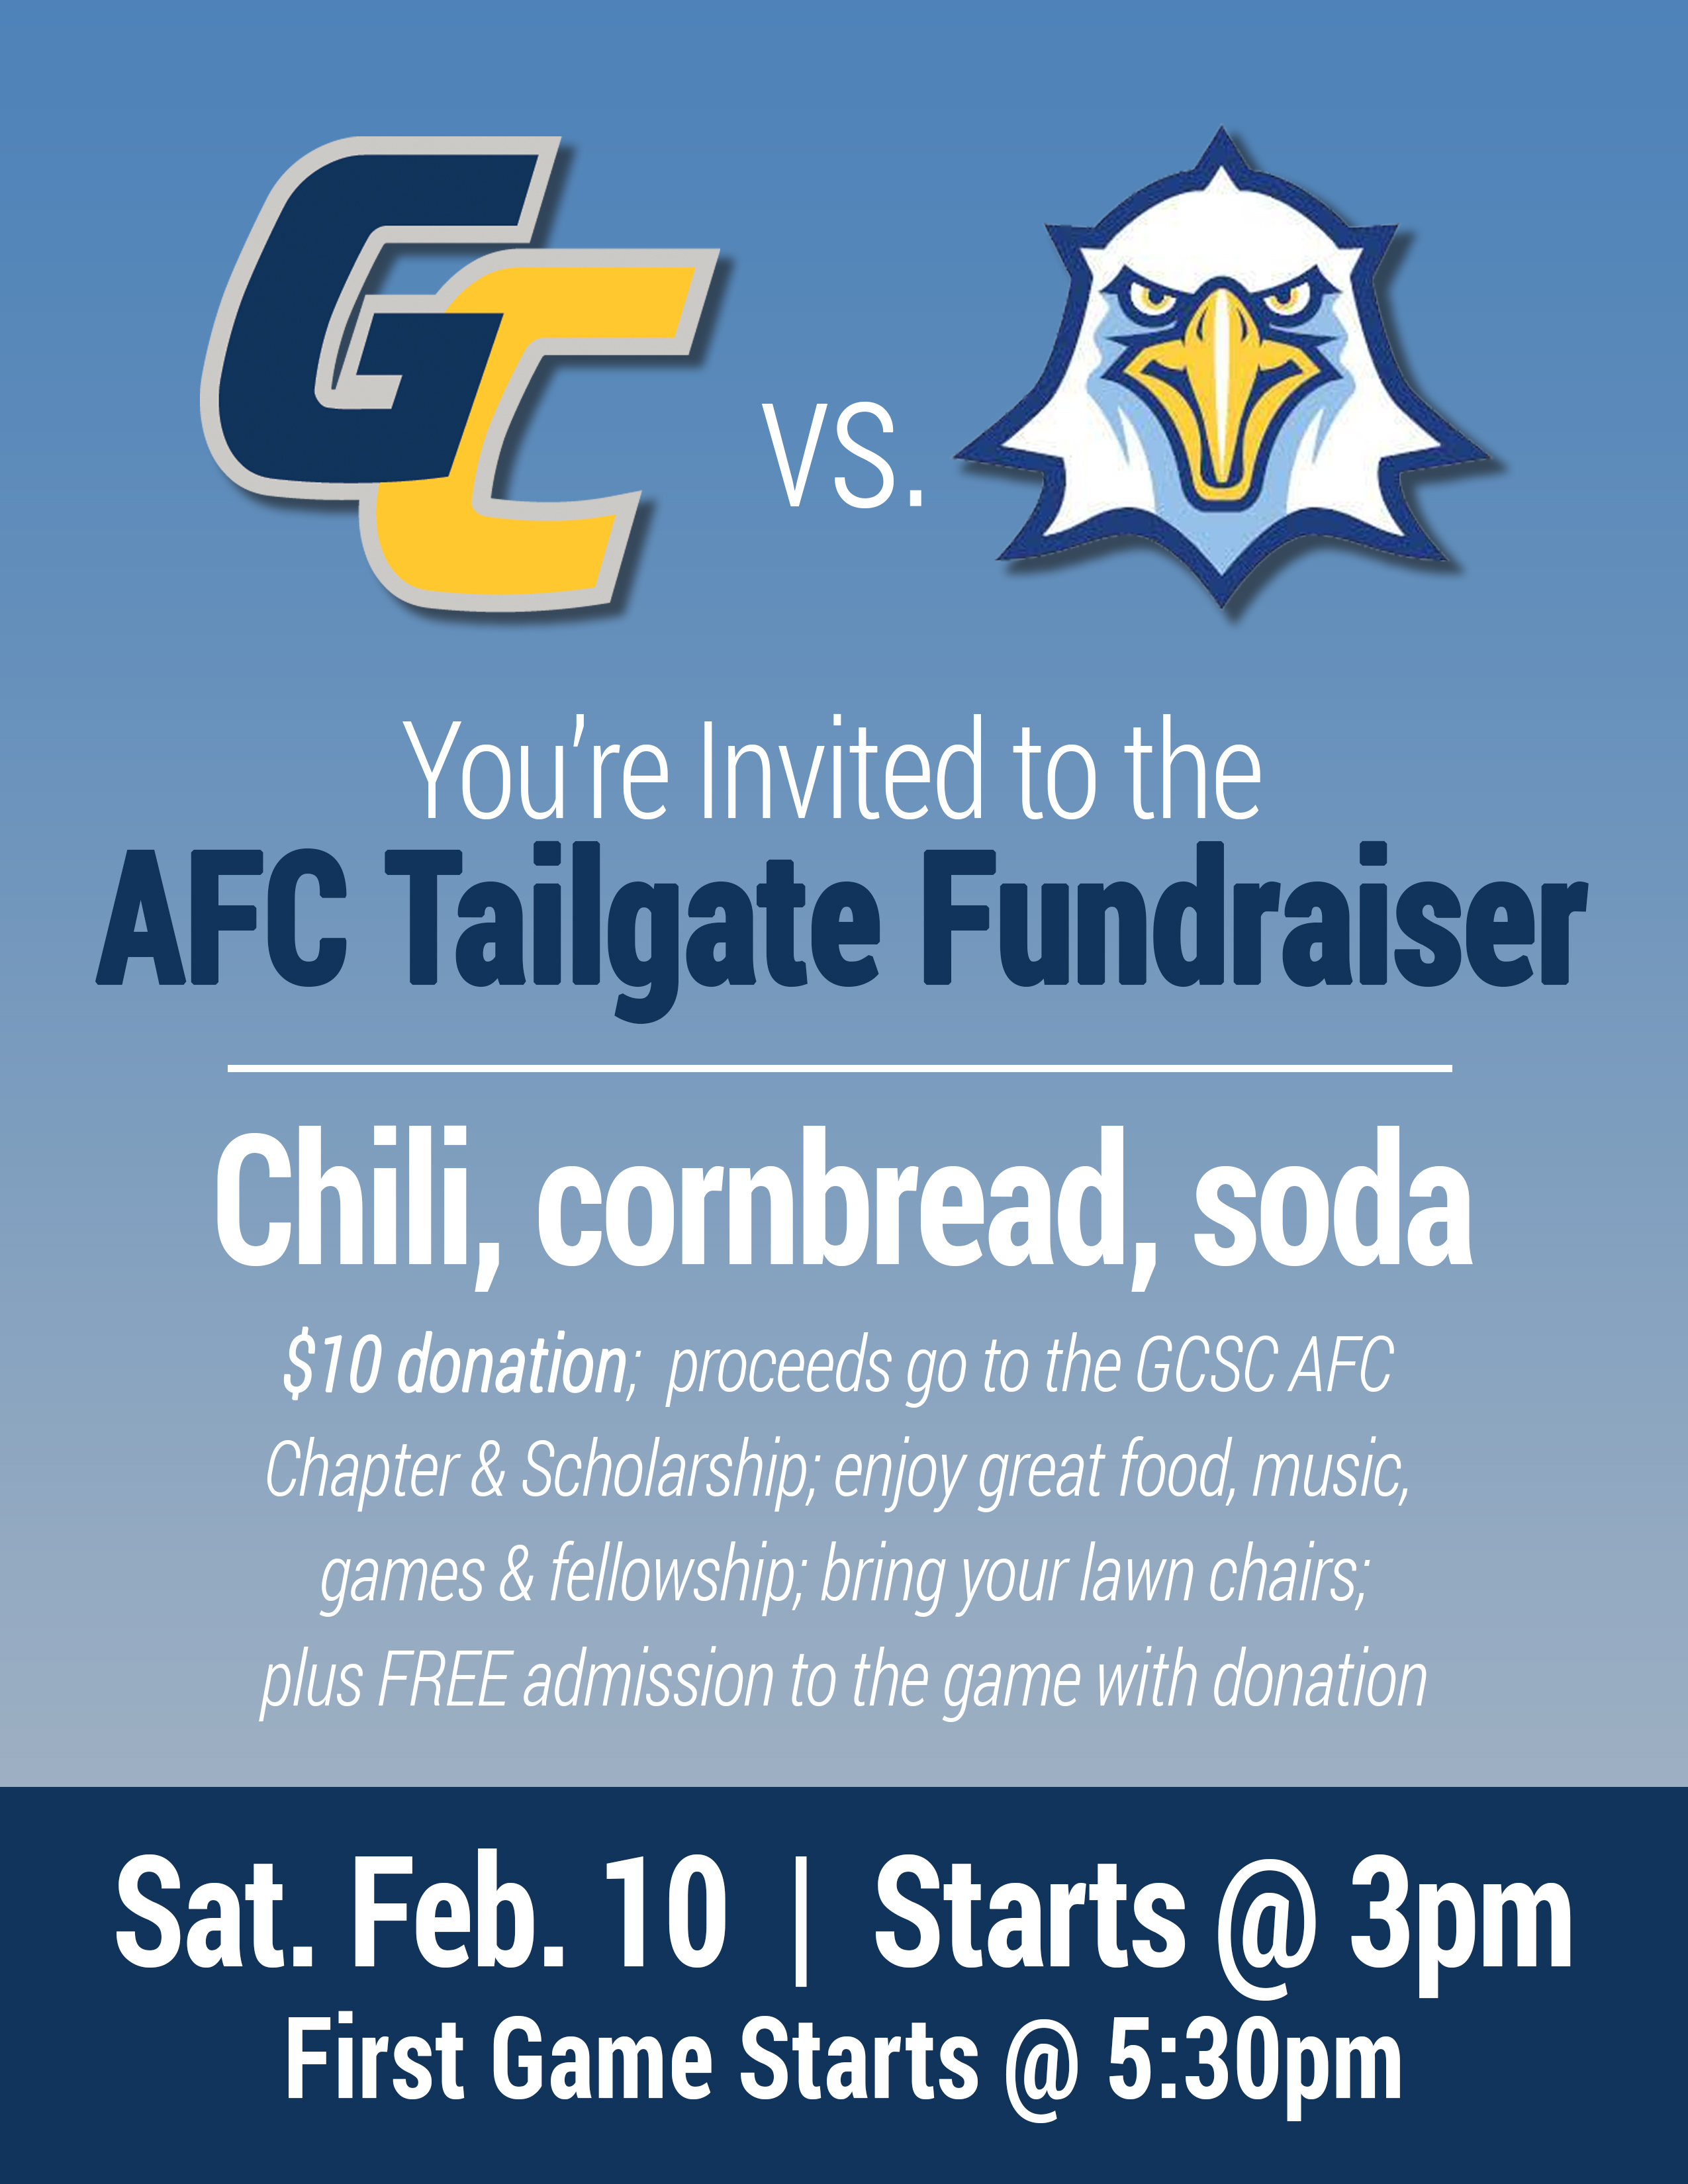 AFC TAILGATE FUNDRAISER